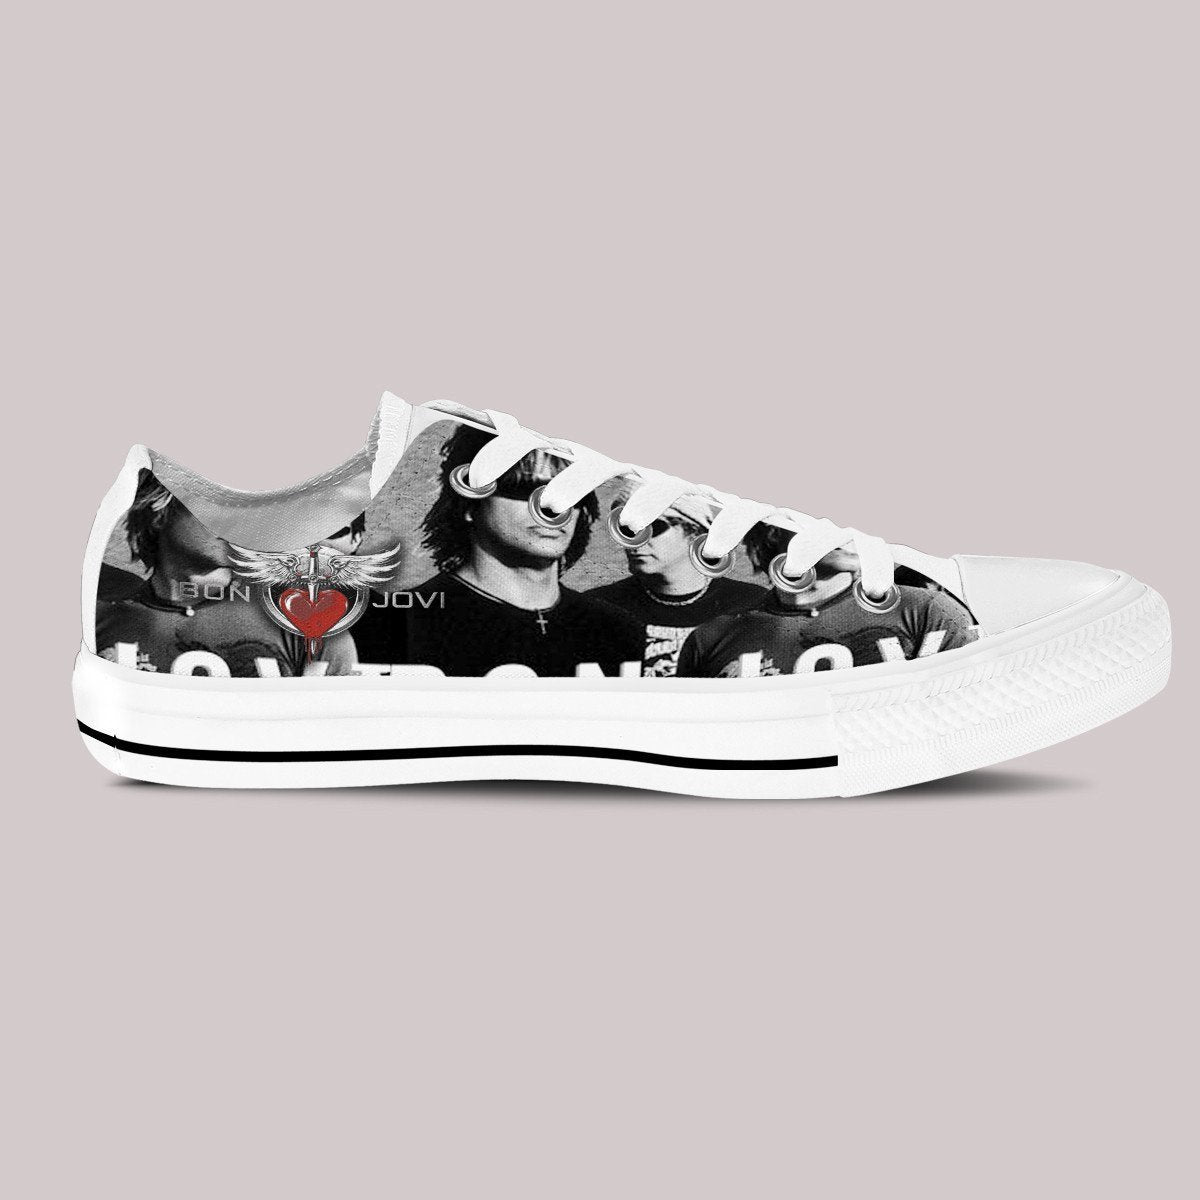 bon jovi ladies low cut sneakers